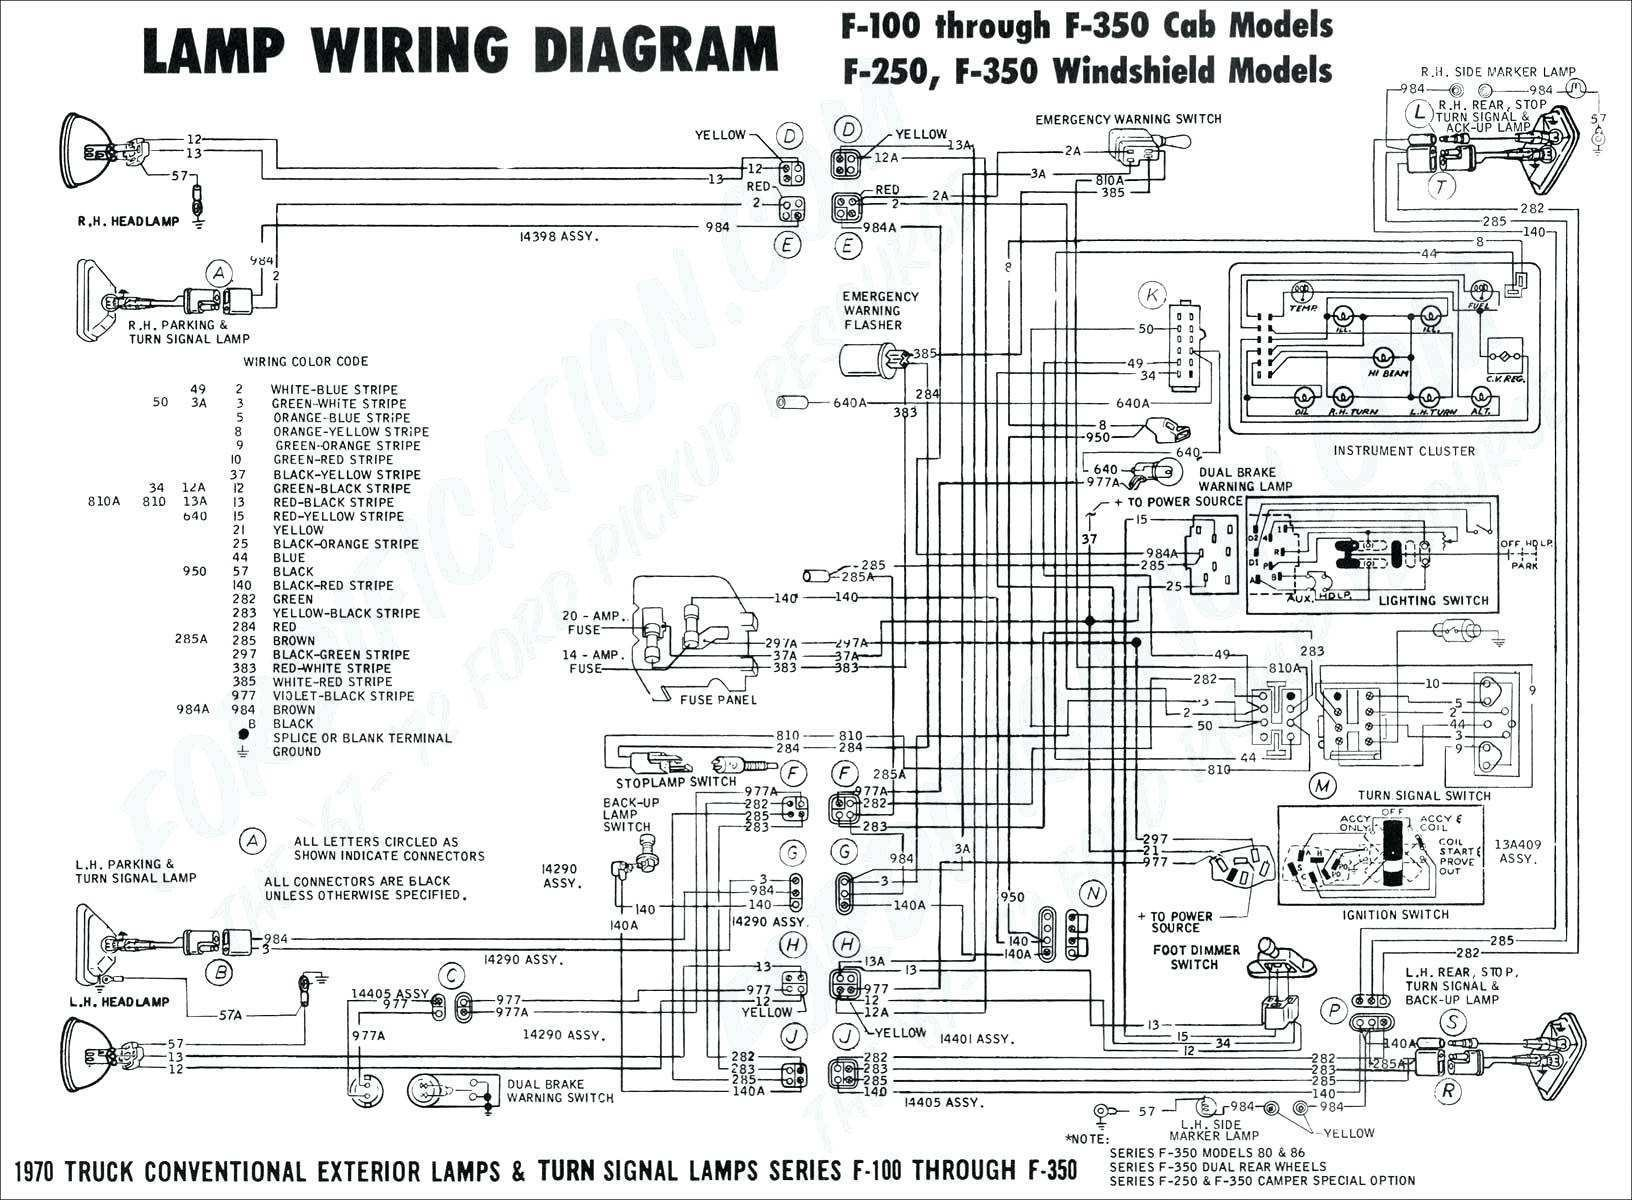 wiring diagram for 97 blazer